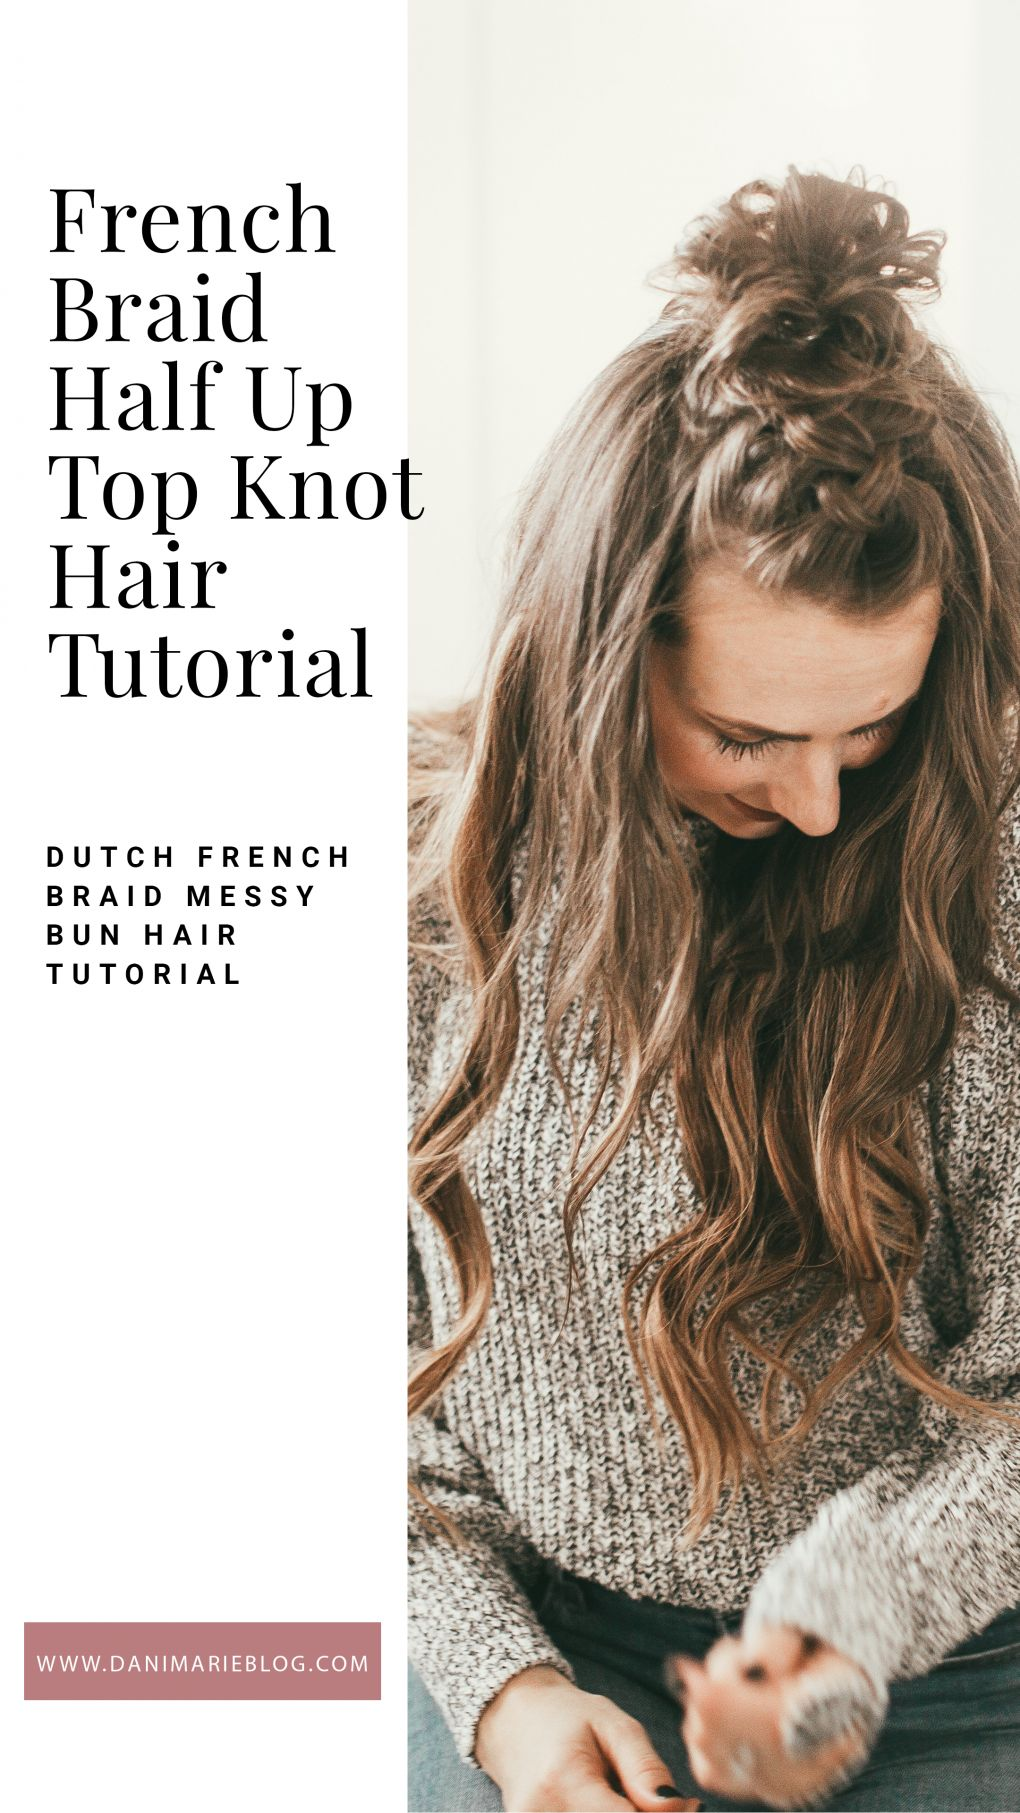 Looking for a easy hair tutorial? Utah Style Blogger Dani Marie is sharing this awesome french braid half up bun hair tutorial! Click to see it here! #braidedhairstyle #hairtutorial #easyhairtutorial #danimarie #braidedbun